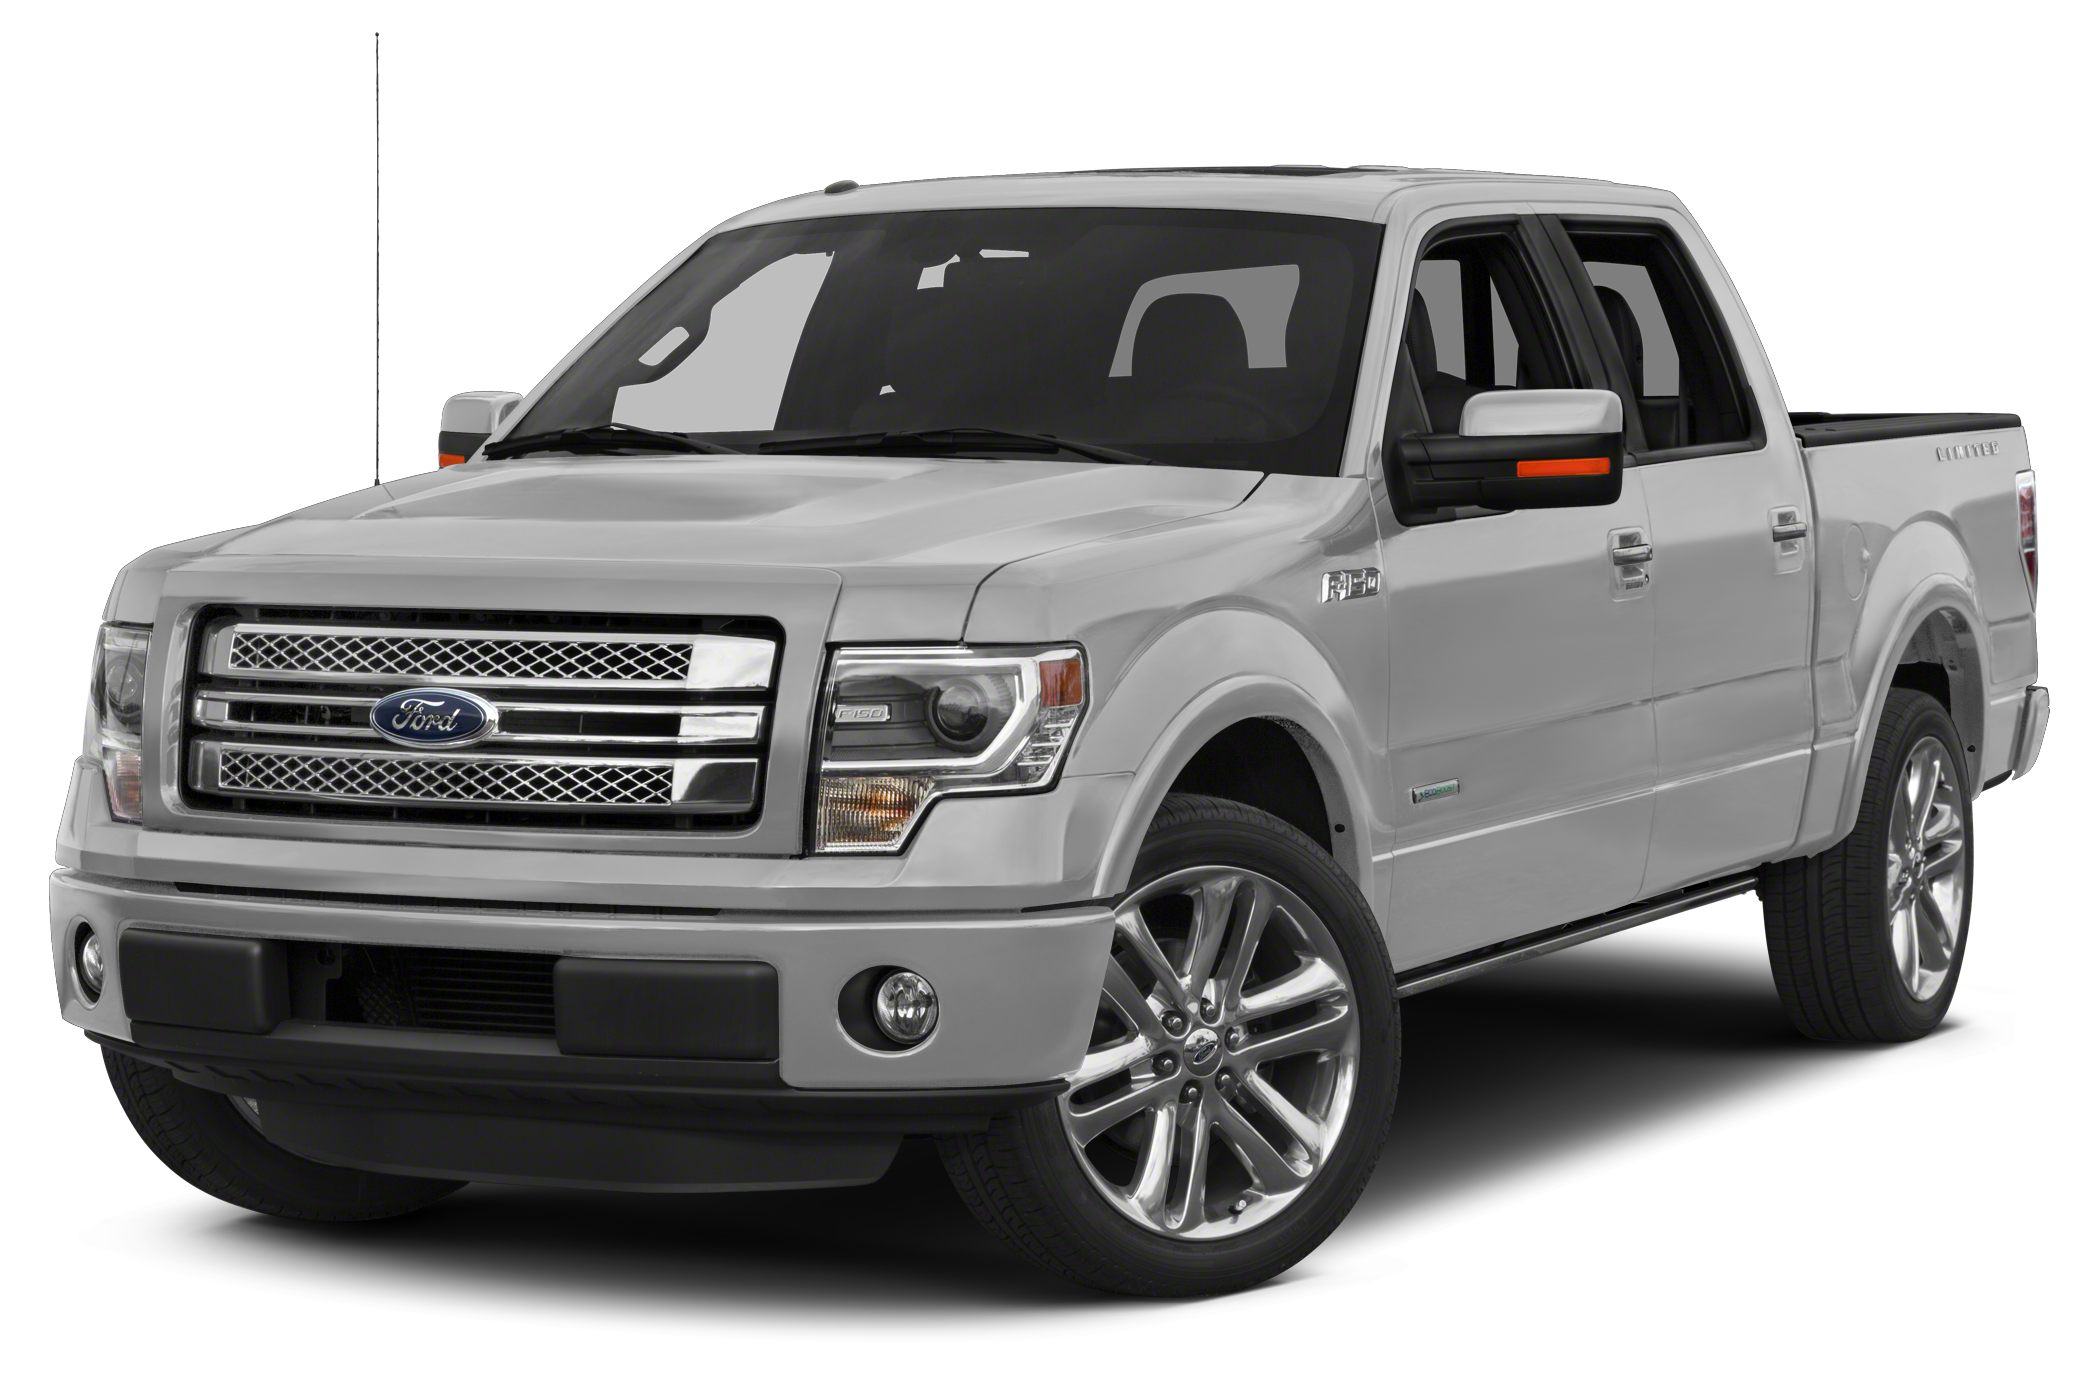 2014 Ford F-150 Limited Excellent Condition Ford Certified 800 below NADA Retail FUEL EFFICIEN